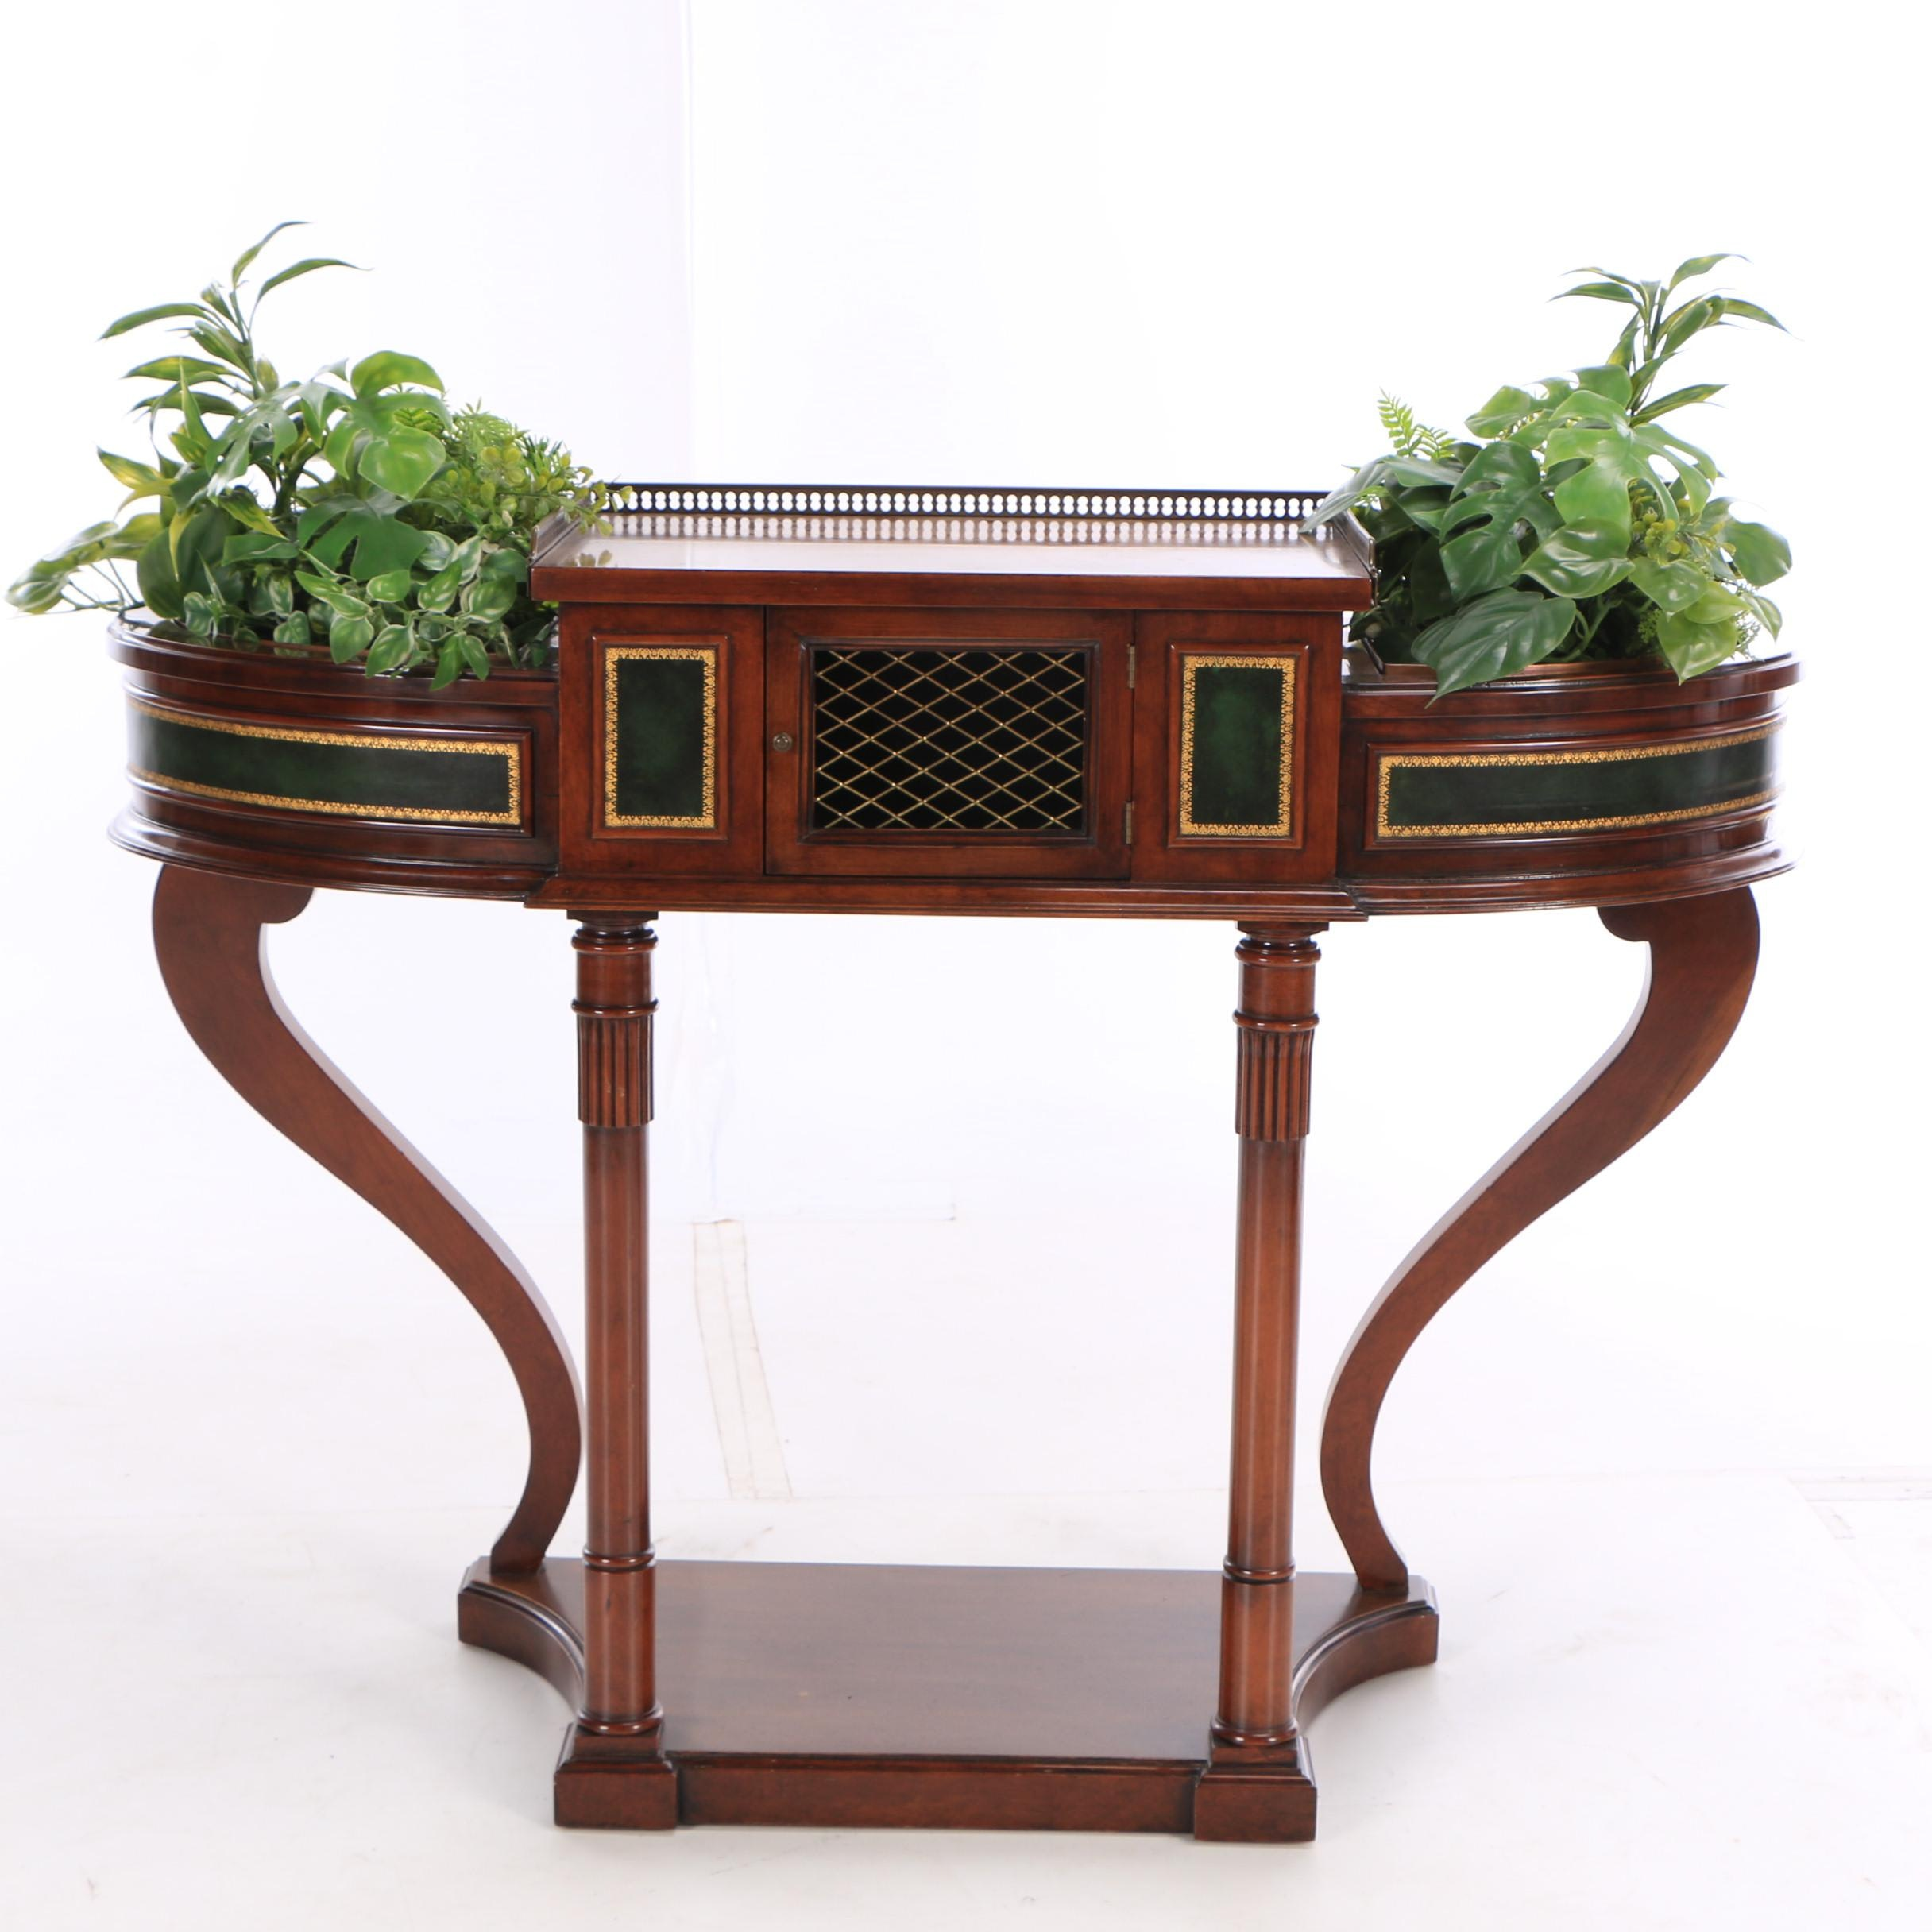 Late Victorian Style Cherry Console Table with Faux Plants, Late 20th Century